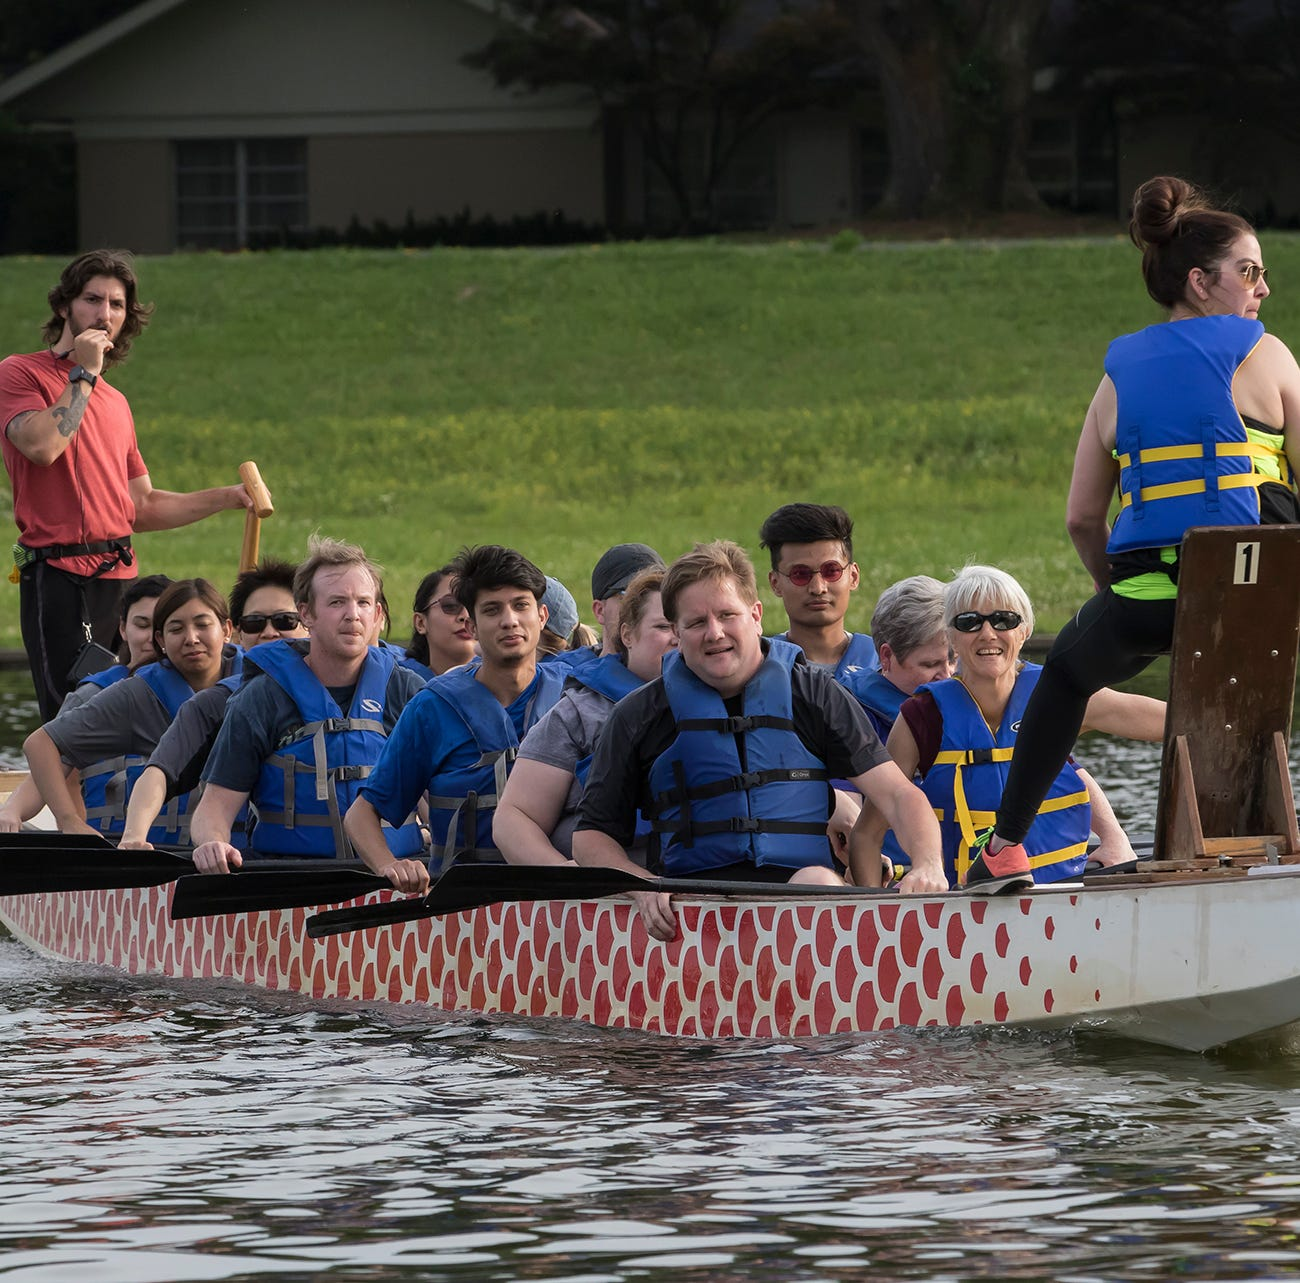 Children's Coalition Dragon Boat Races coming Saturday